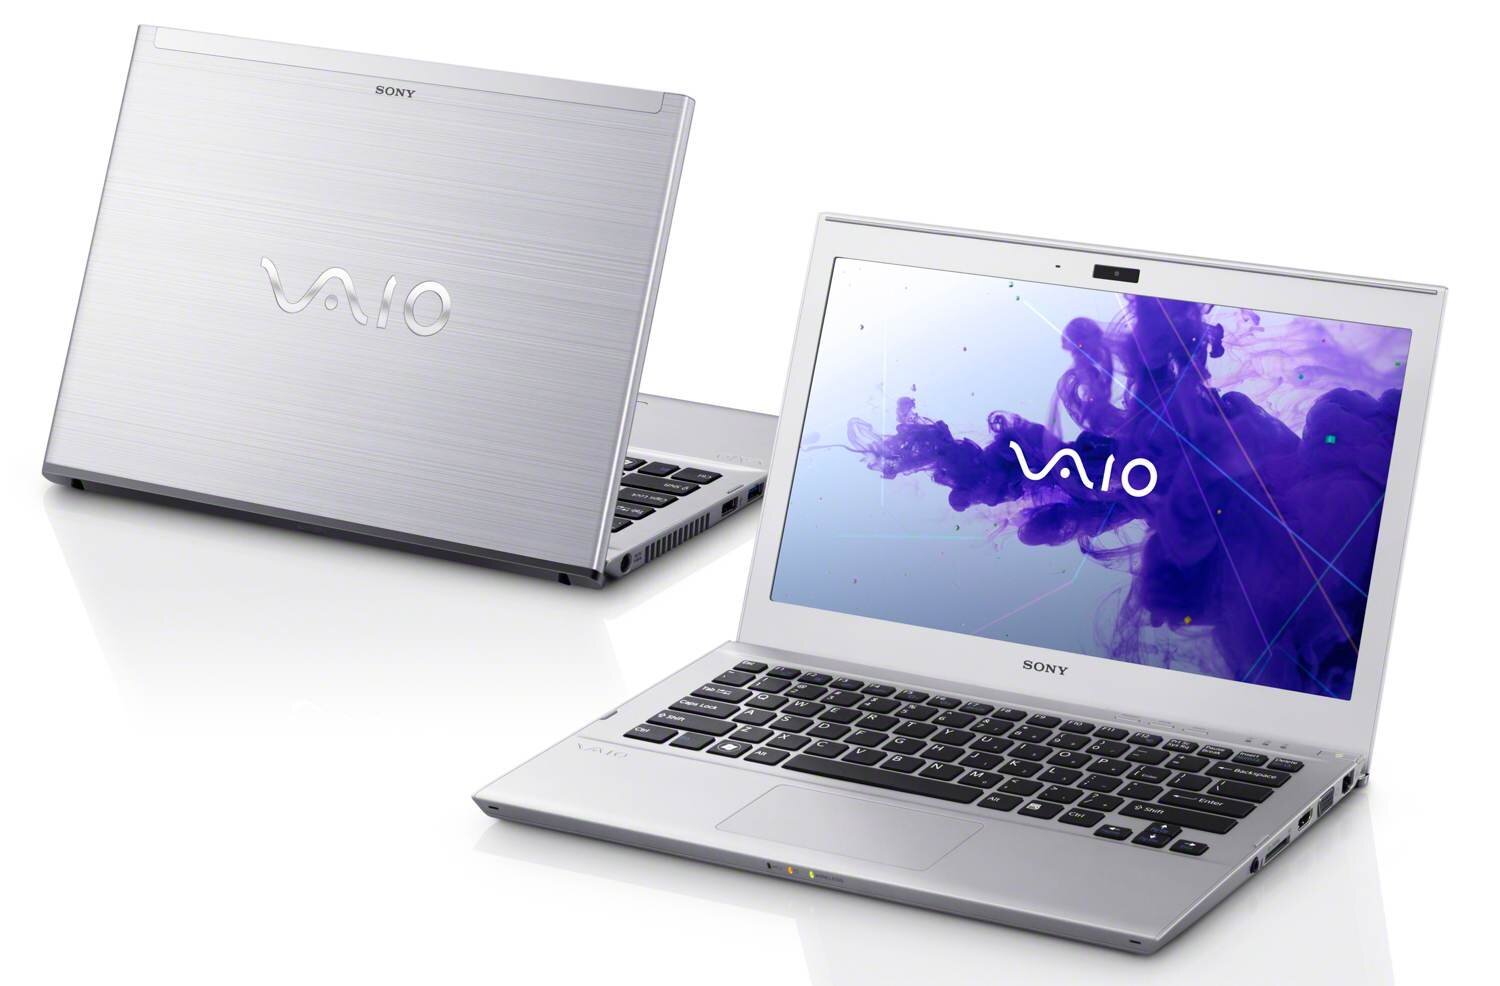 Laptop Sony Vaio T Series SVT13112FX - Intel core i5-3317U 1.7GHz, 4GB RAM, 500GB HDD, VGA Intel HD Graphics 4000, 13.3 inch